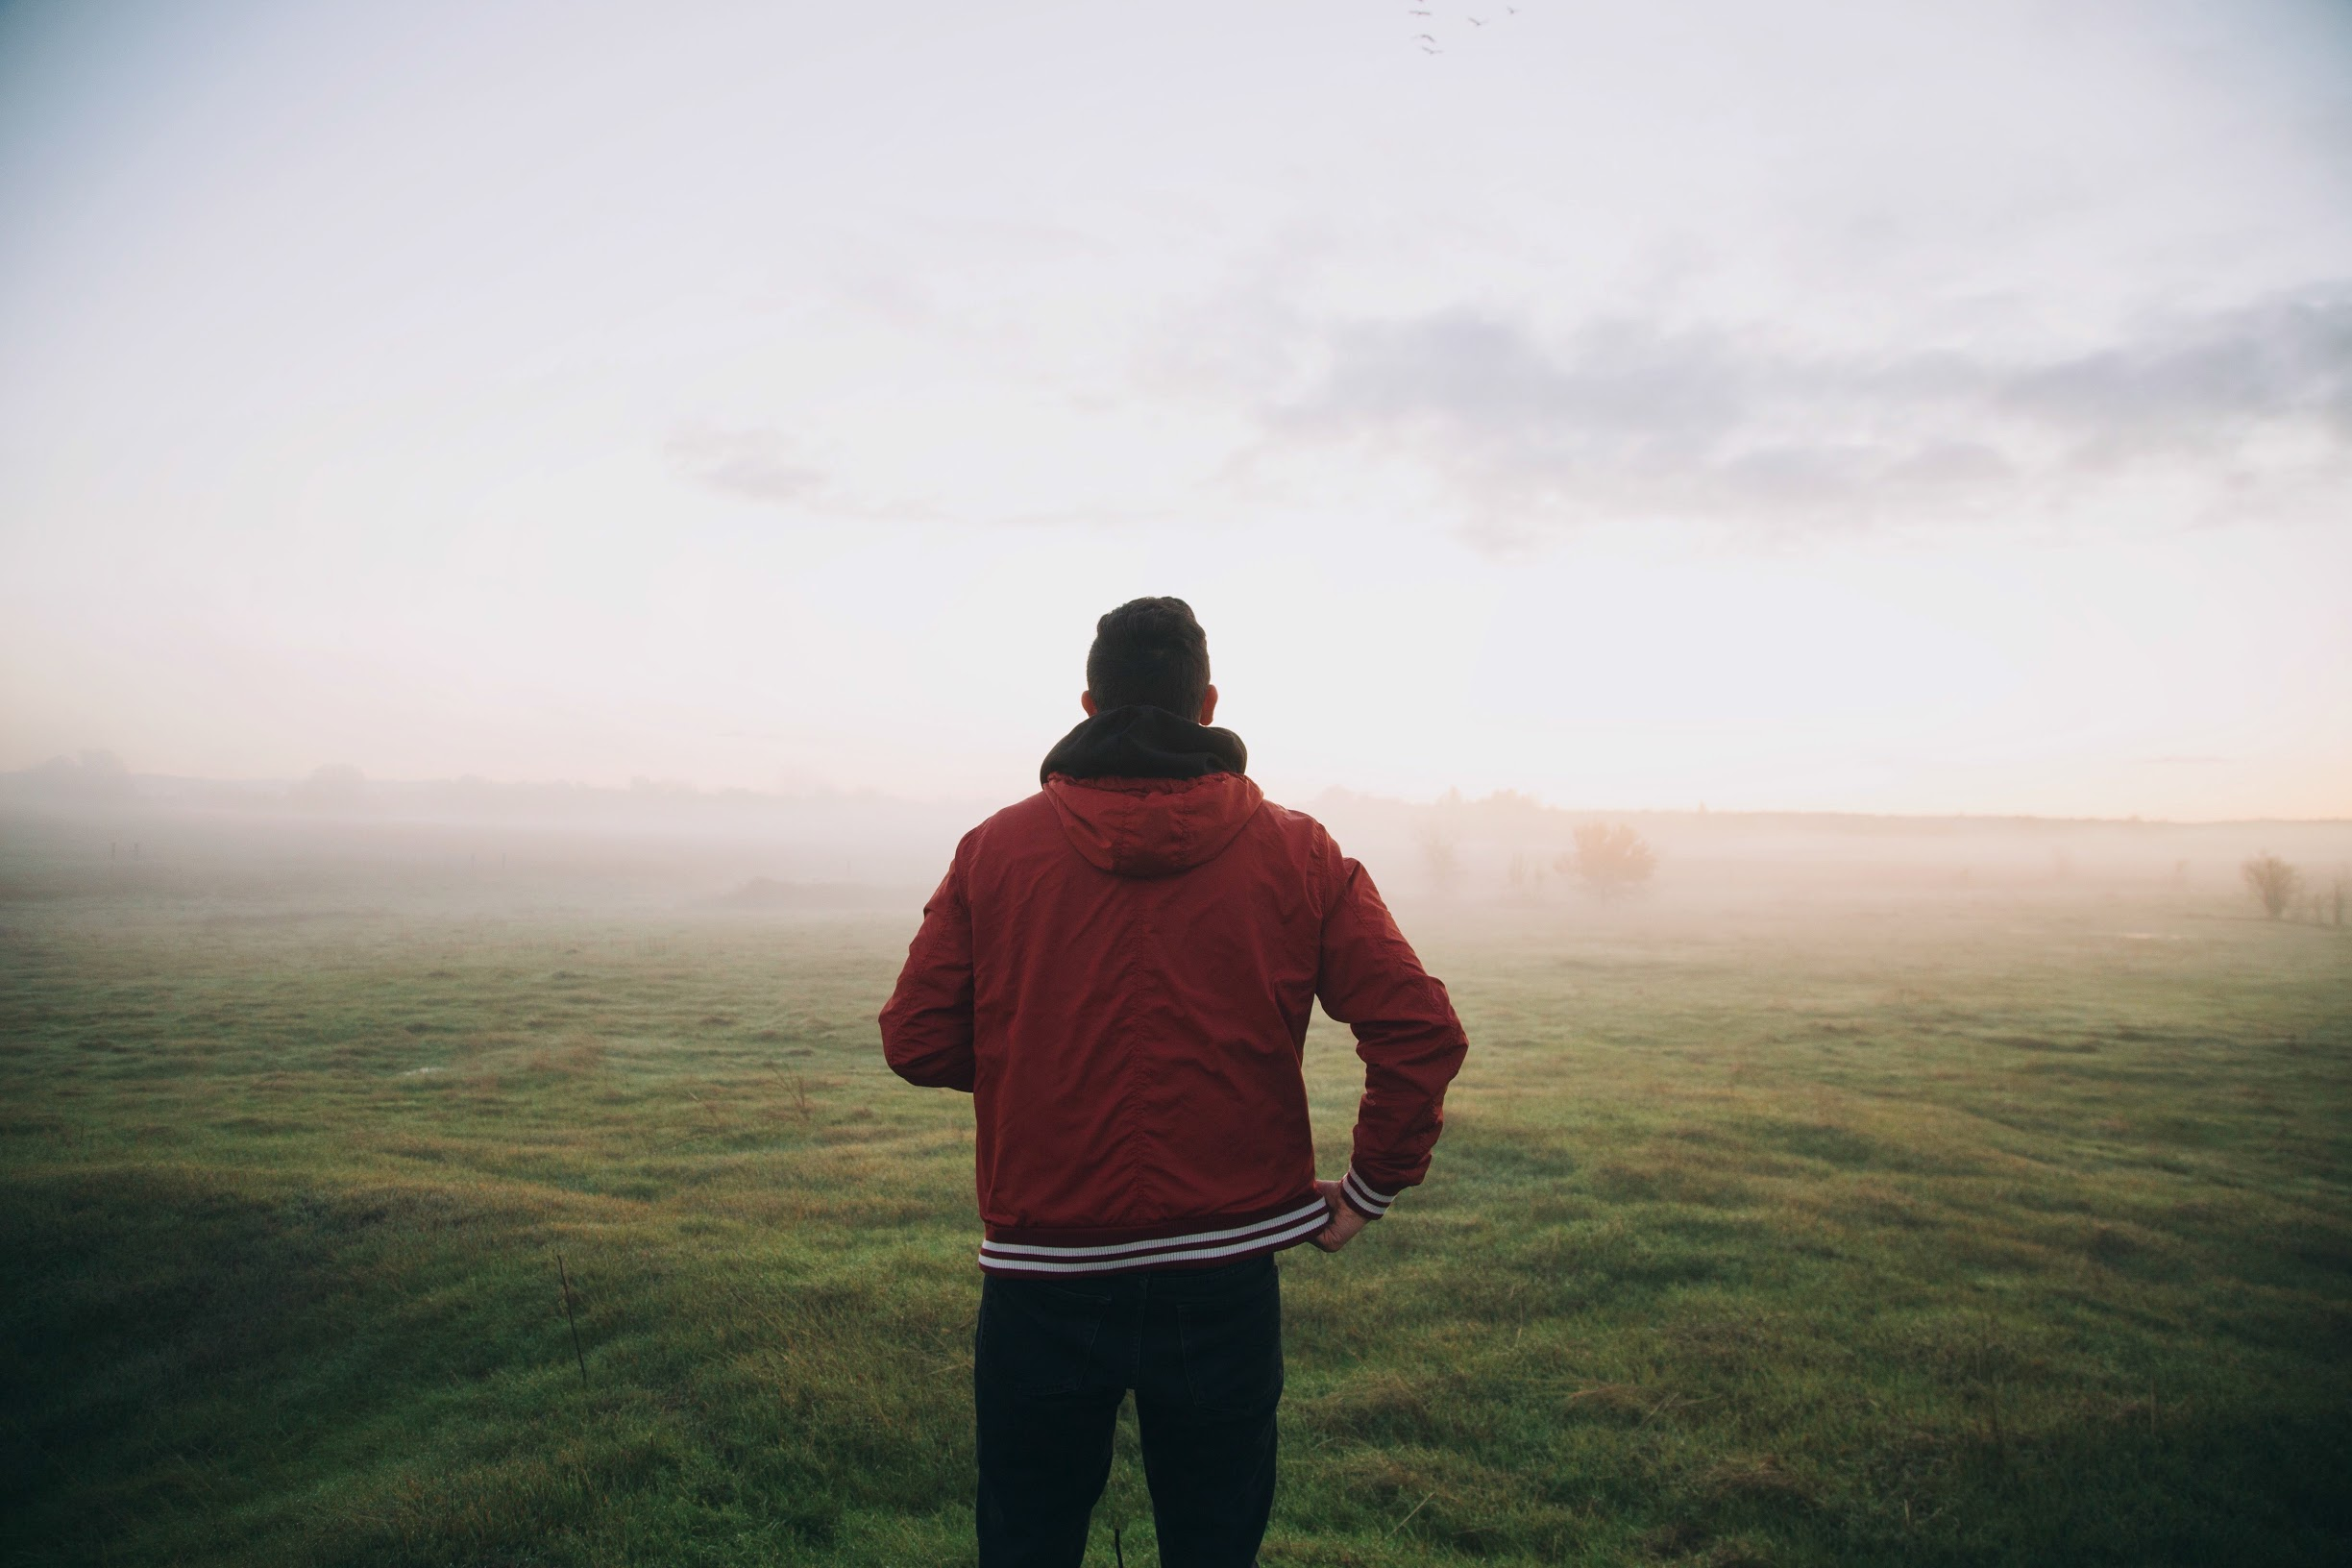 man-in-red-jacket-looking-at-cloud-cover